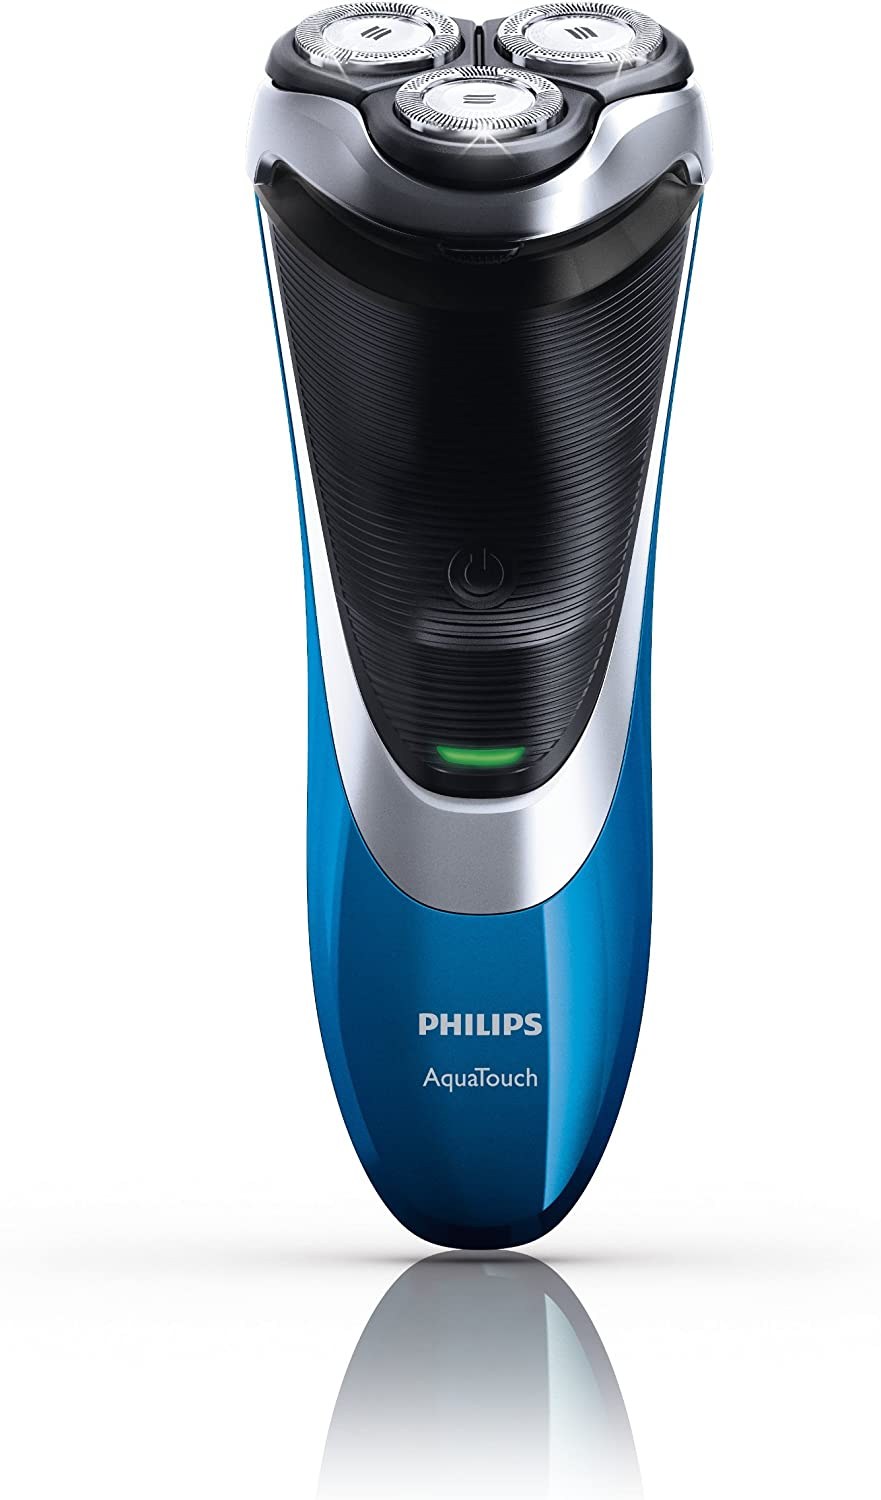 Philips AT890 - Afeitadora, Li-Ion: Amazon.es: Salud y cuidado personal